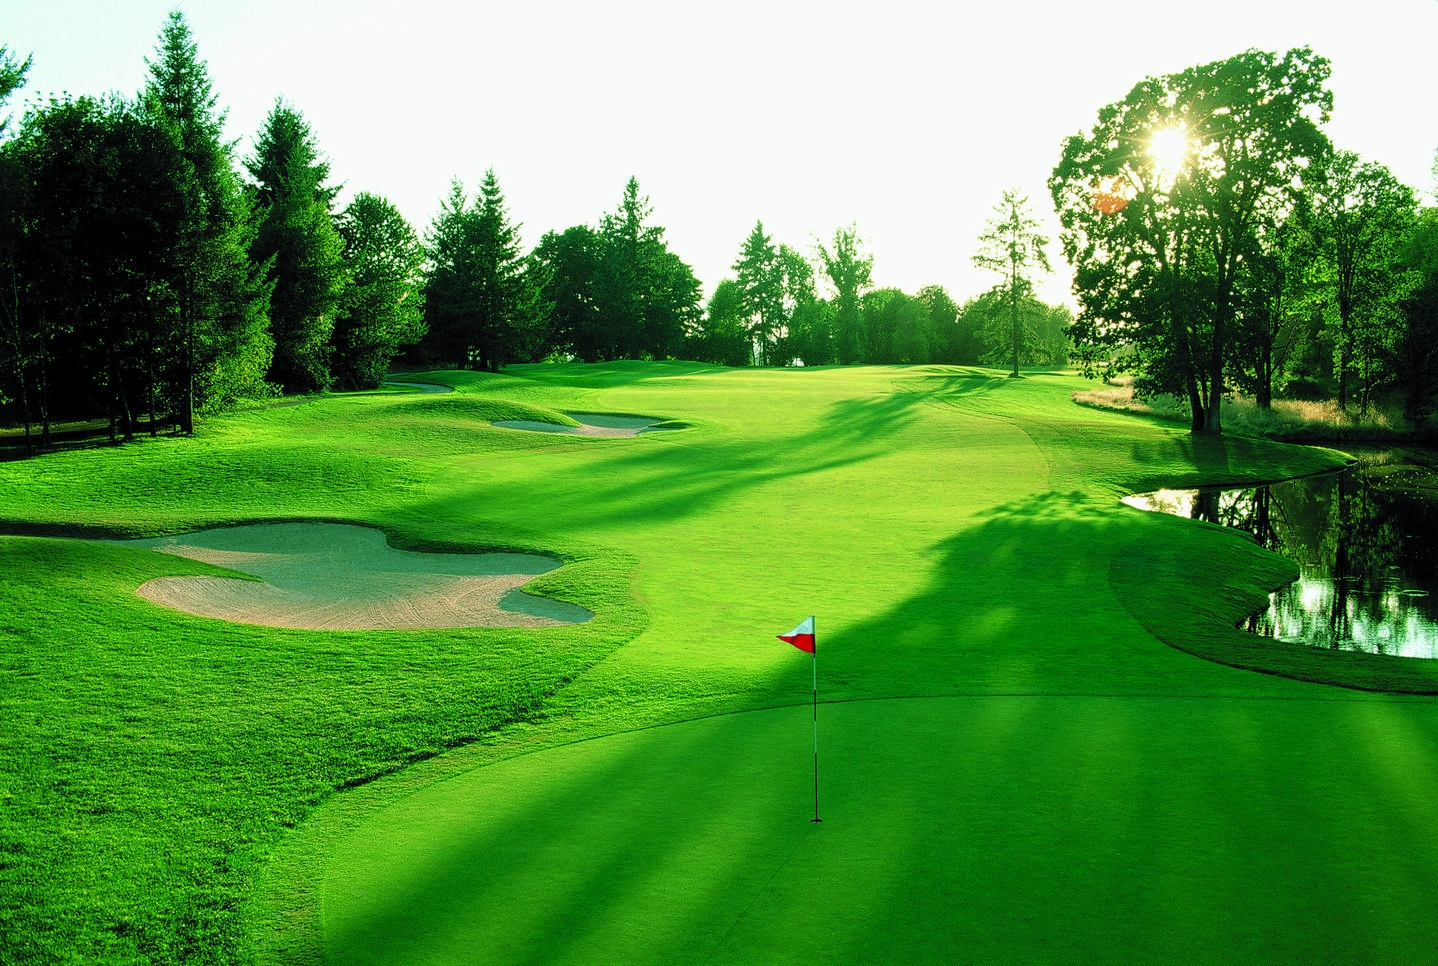 golf course target goal wallpaper background